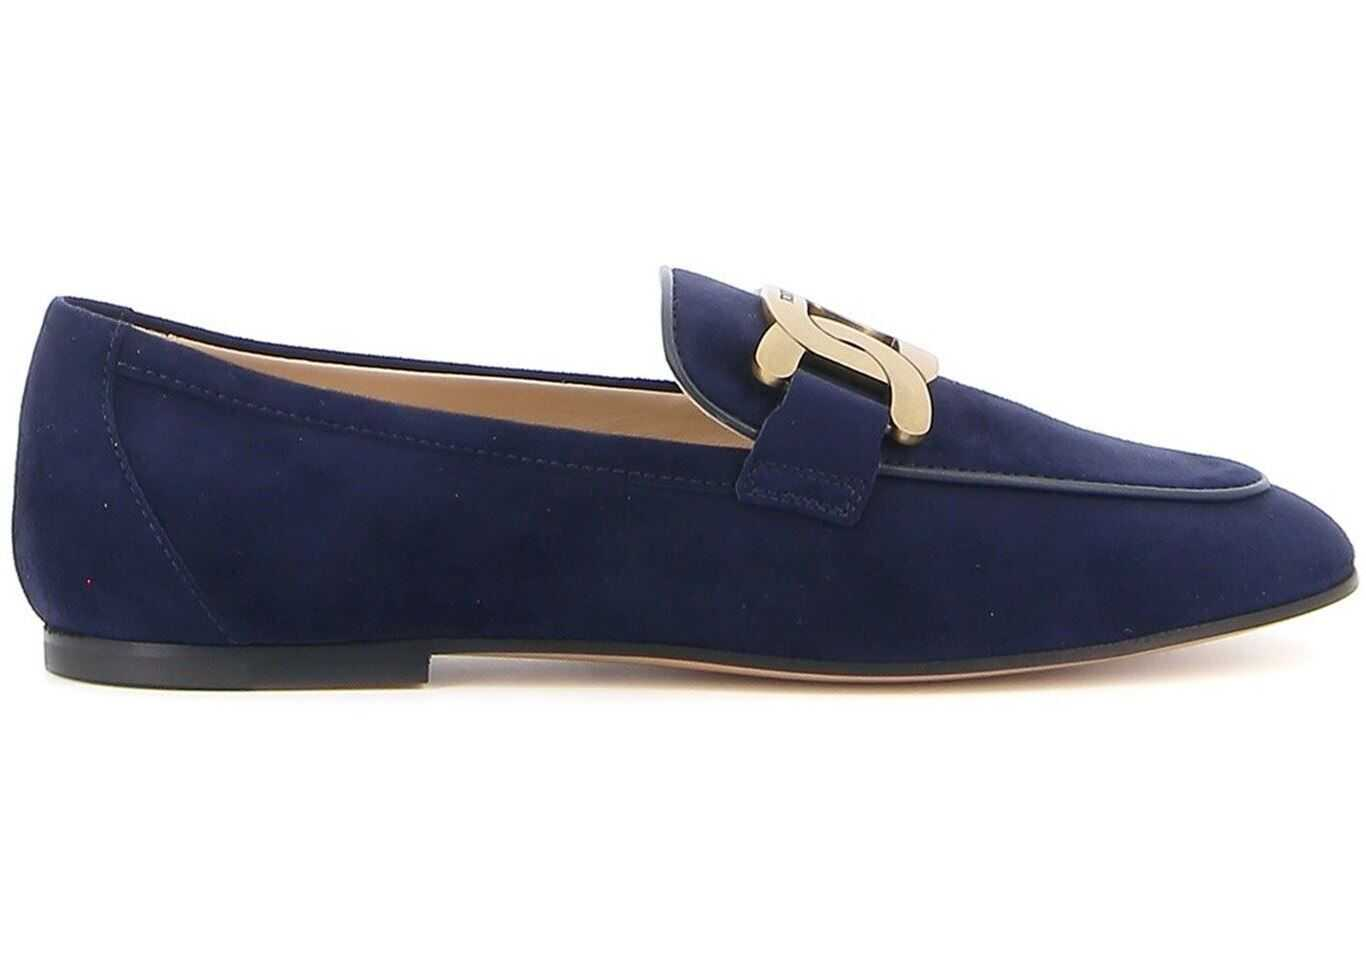 TOD'S Suede Slippers In Blue XXW79A0DD00D8WU824 Blue imagine b-mall.ro